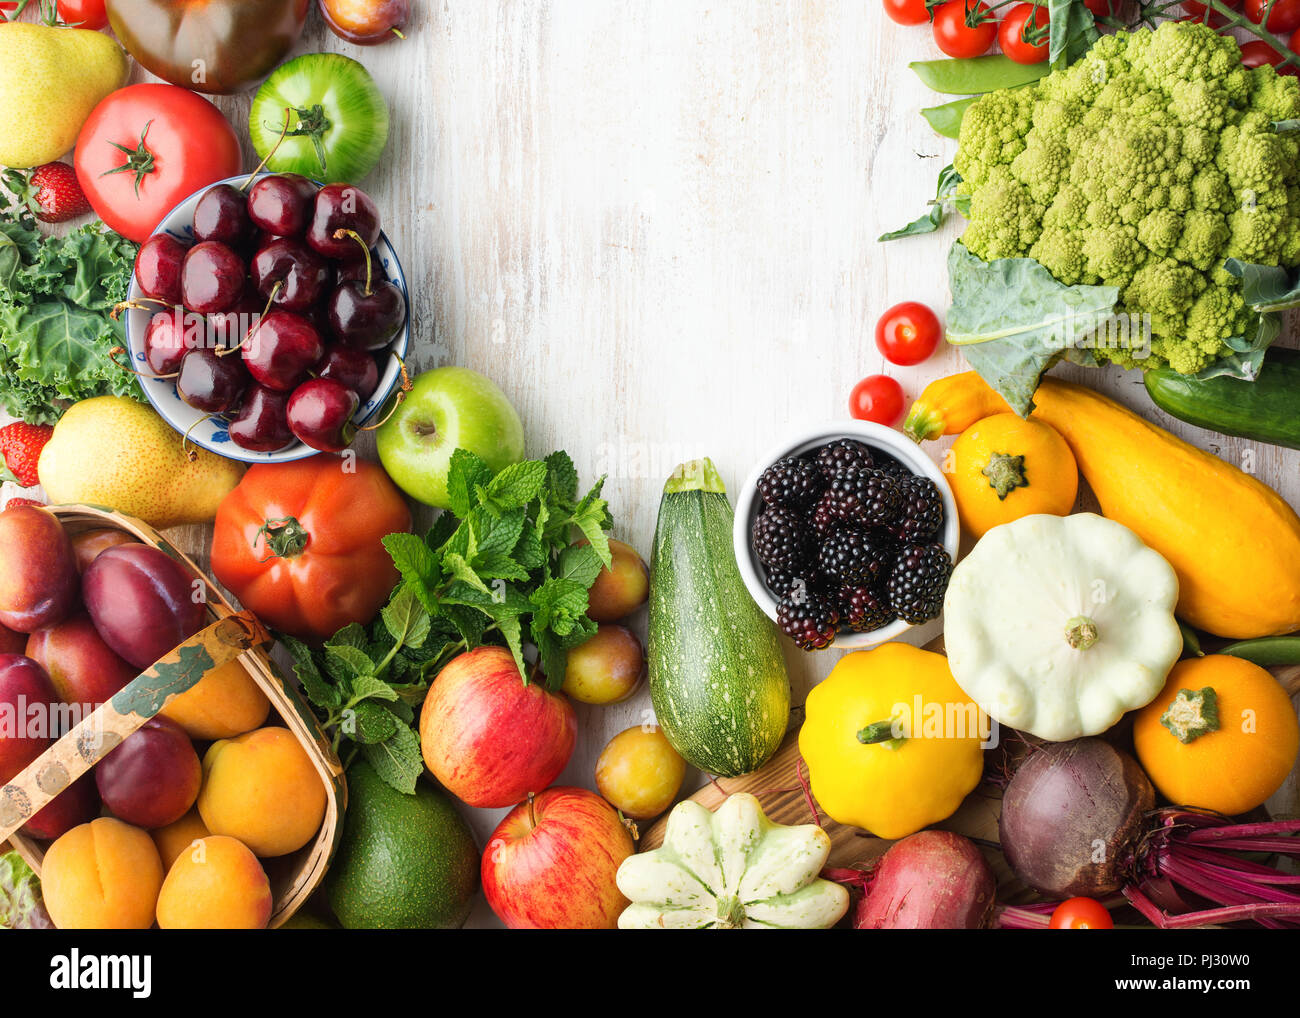 Healthy eating, summer fruits vegetables berries, cherries peaches broccoli squash tomatoes plums beans beetroot, copy space, top view, selective focus Stock Photo